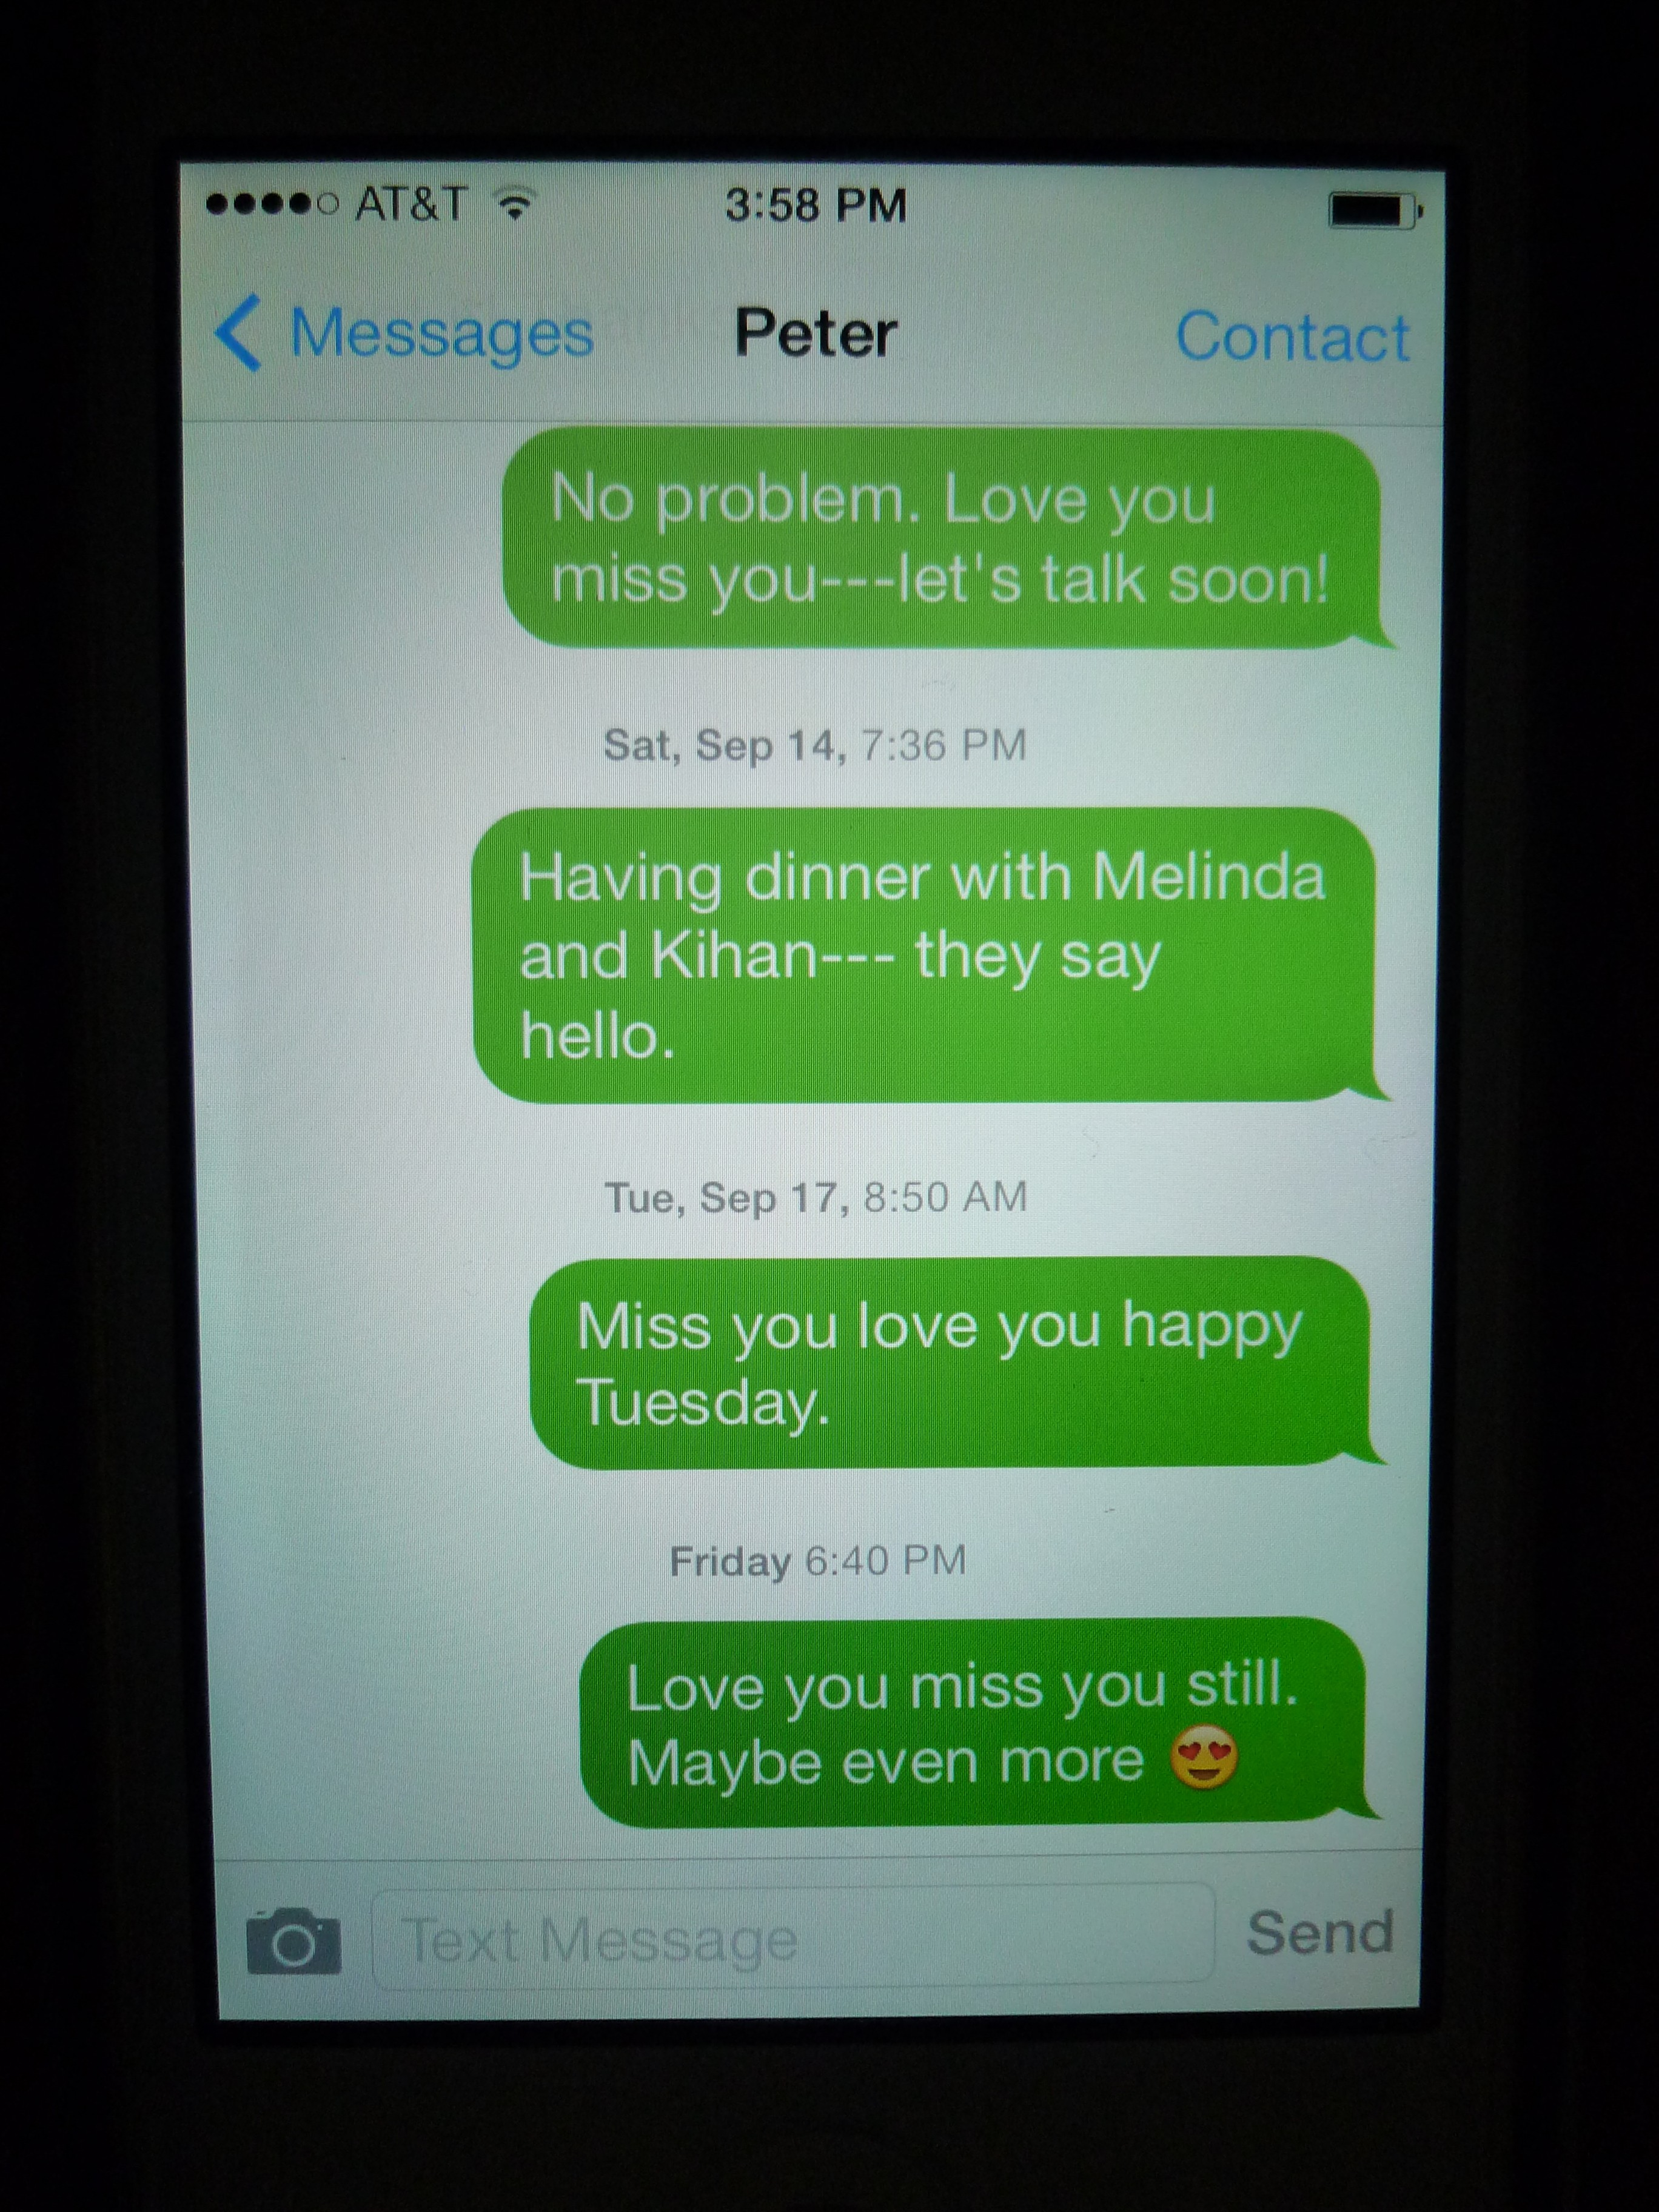 Texts to Mr. Peter